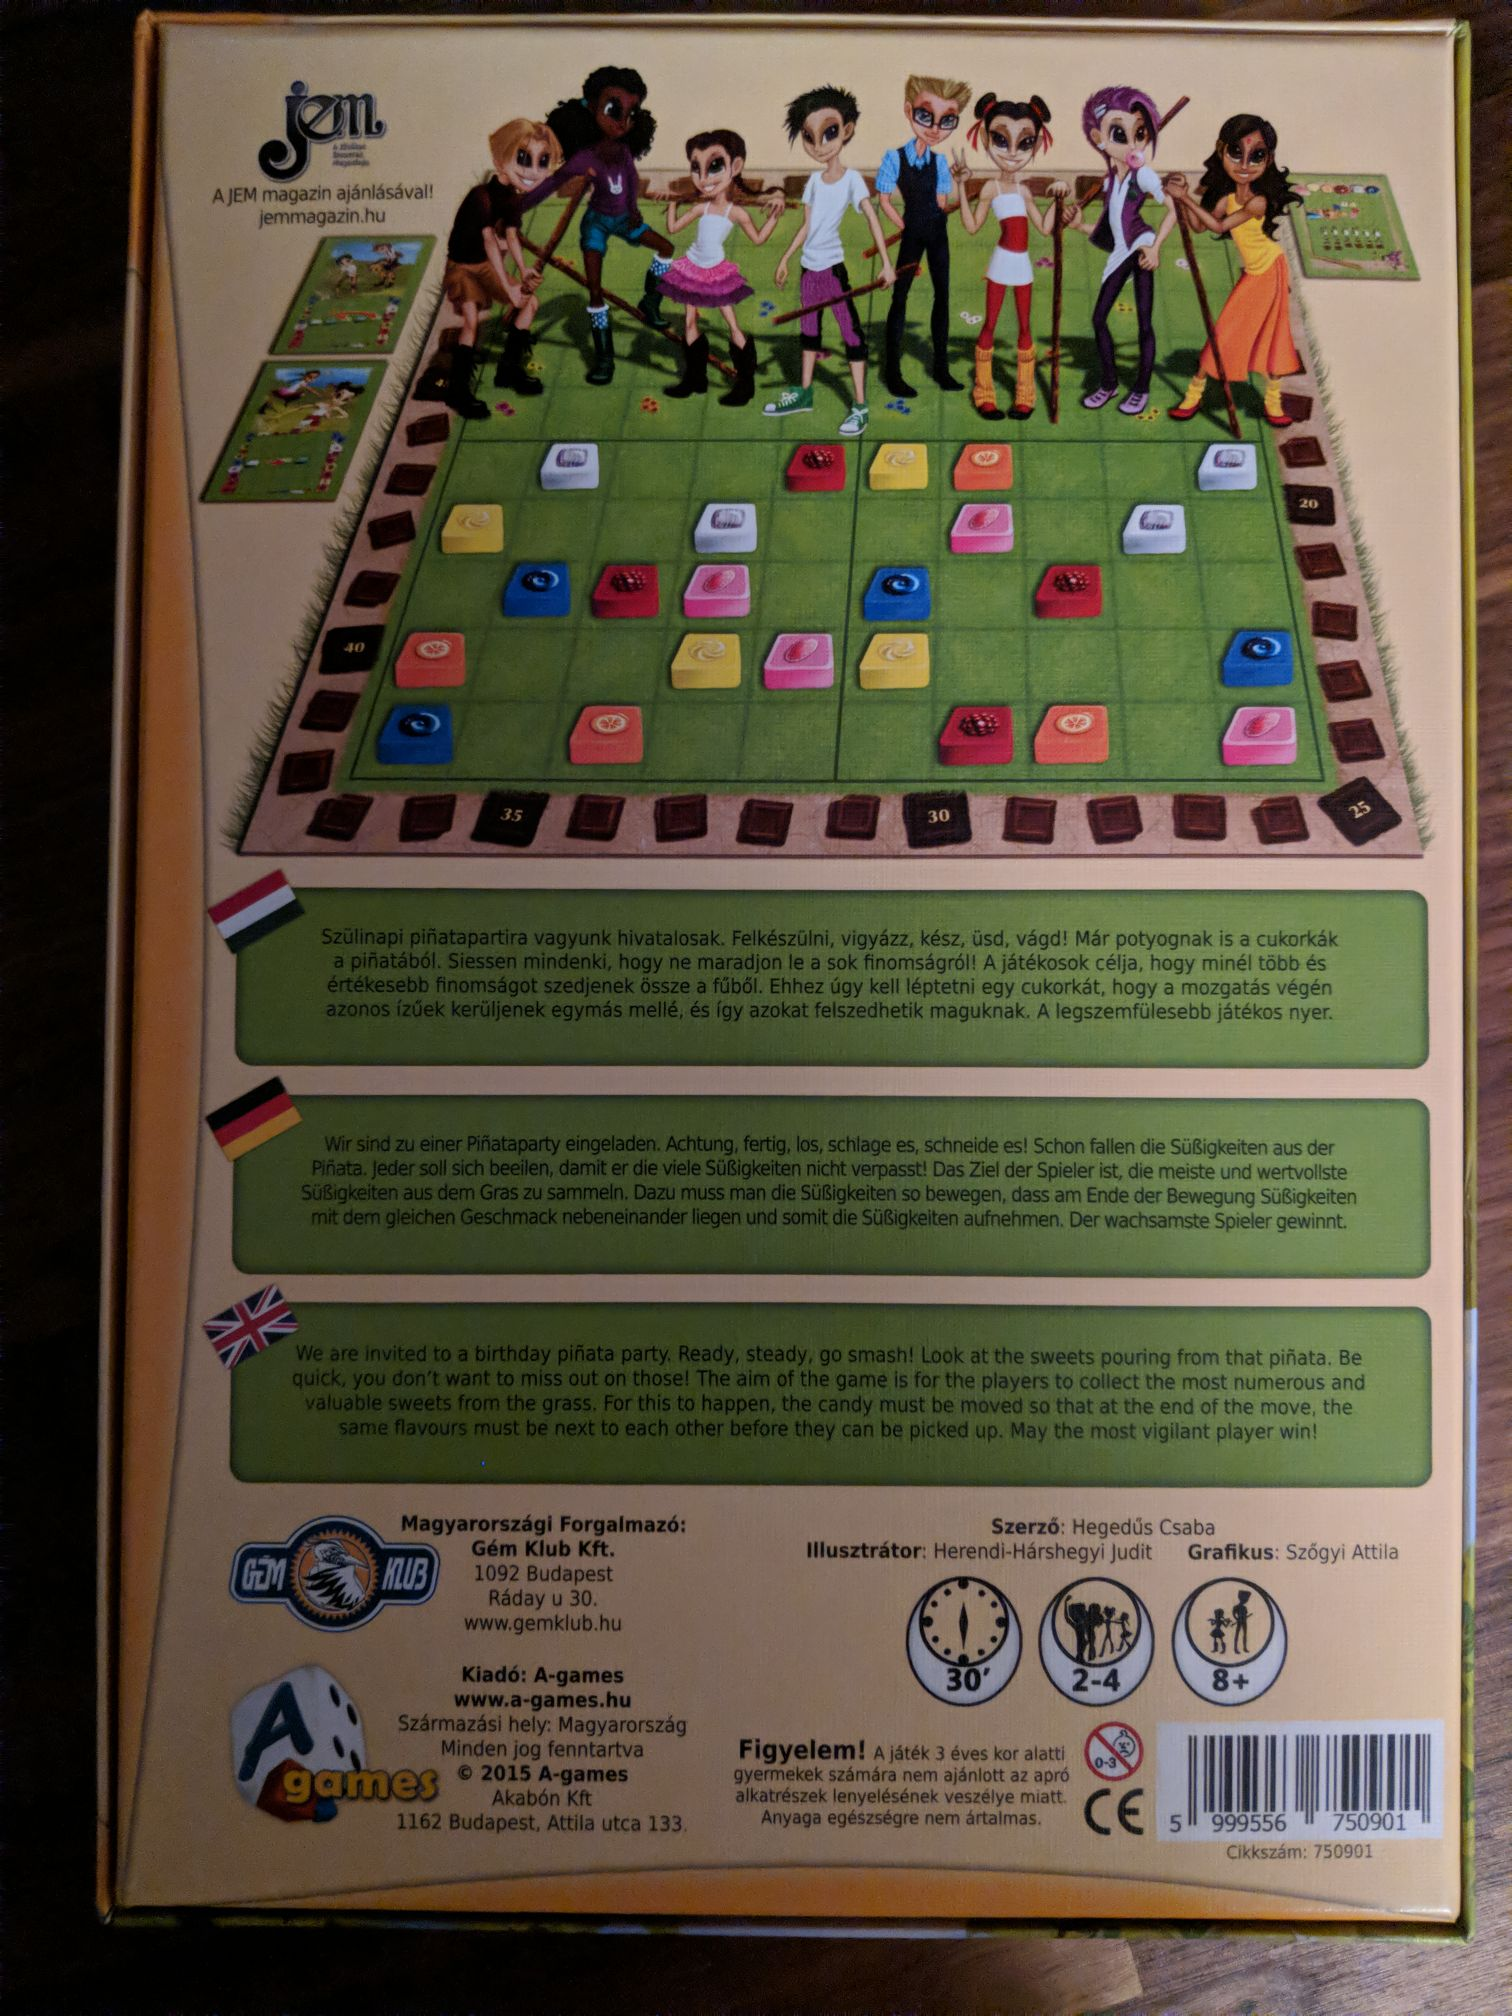 Piñata Party Board Game - A-games (Children's Game) back image (back cover, second image)